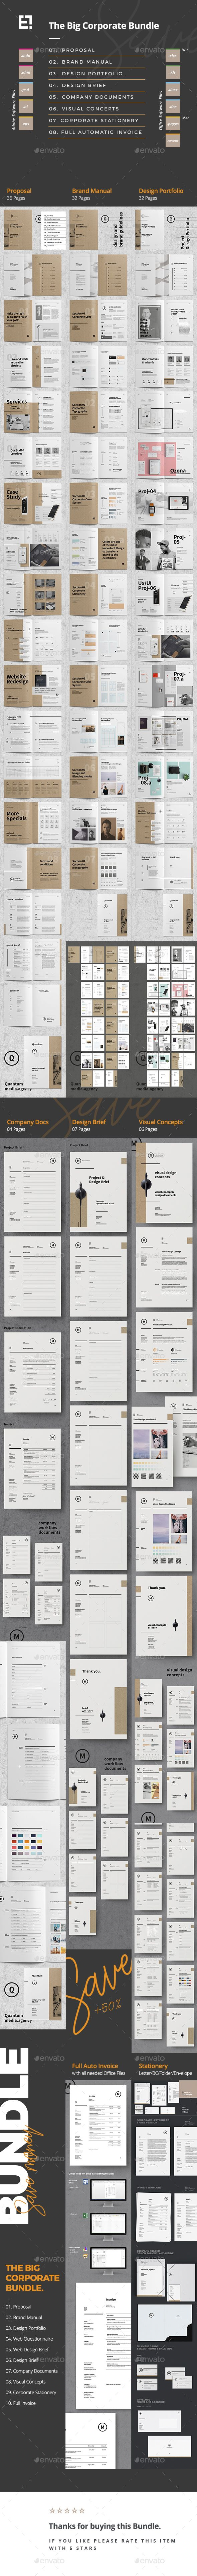 #Company Bundle - Corporate #Brochures Download here: https://graphicriver.net/item/company-bundle/19633185?ref=alena994